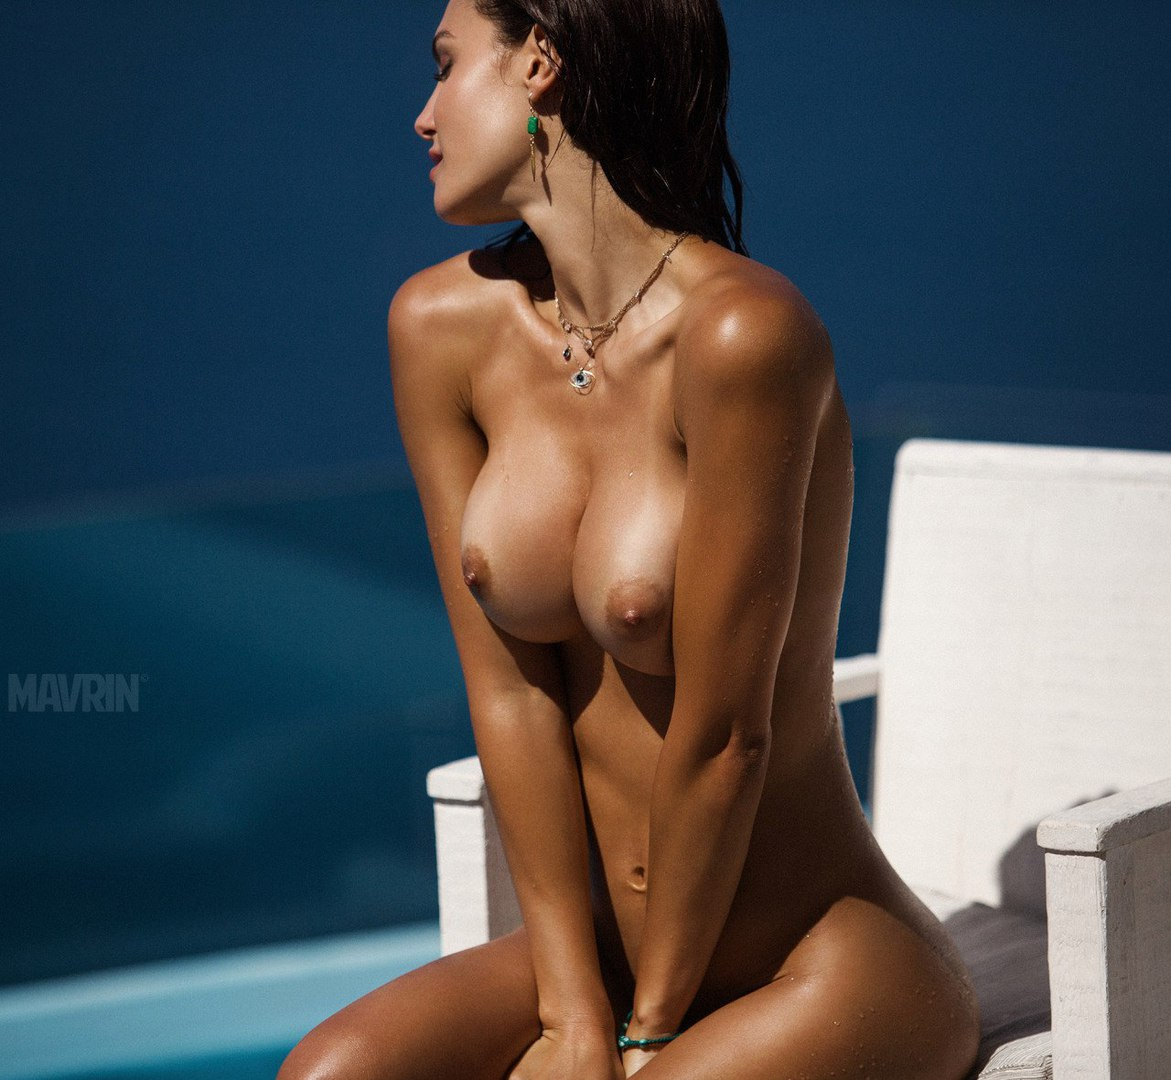 Corking hot and seductive gorgeous girl